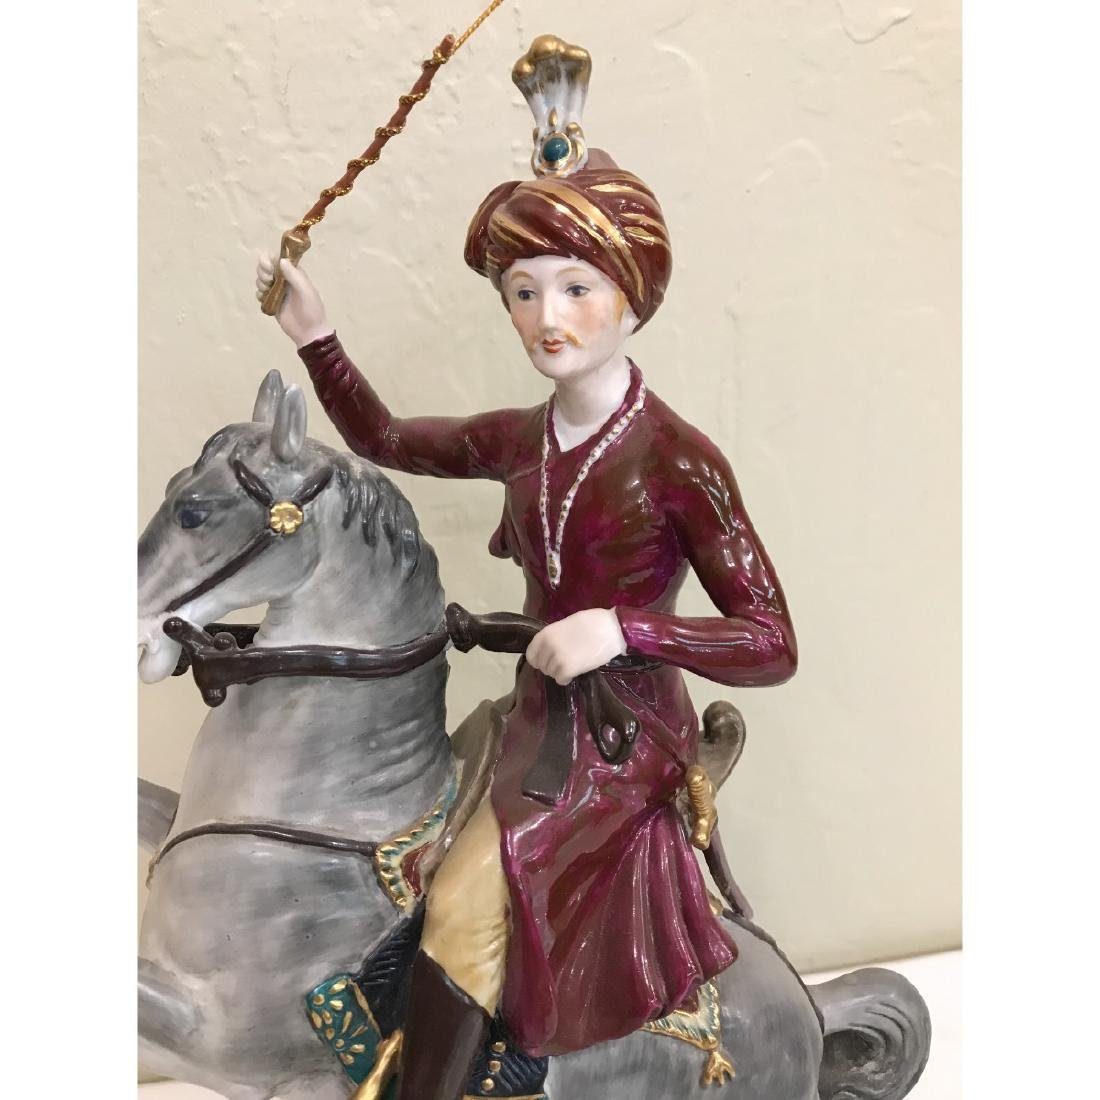 Porcelain Statue of Soldier on Horse - 2